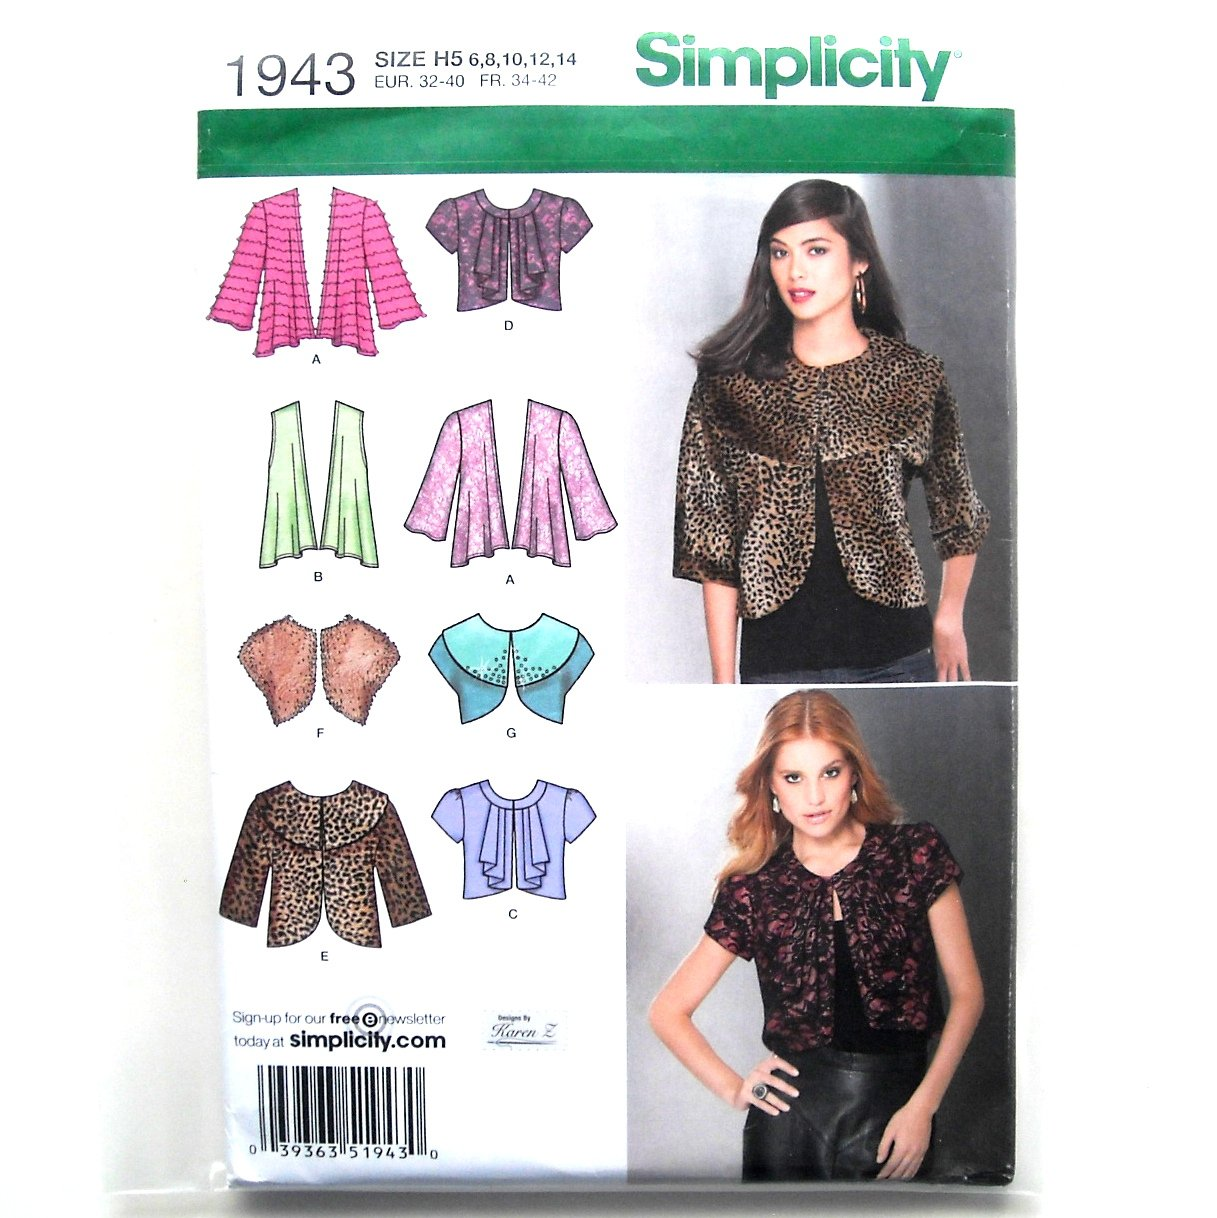 Misses Jackets 6 - 14 Karen Z Designs Simplicity Sewing Pattern 1943